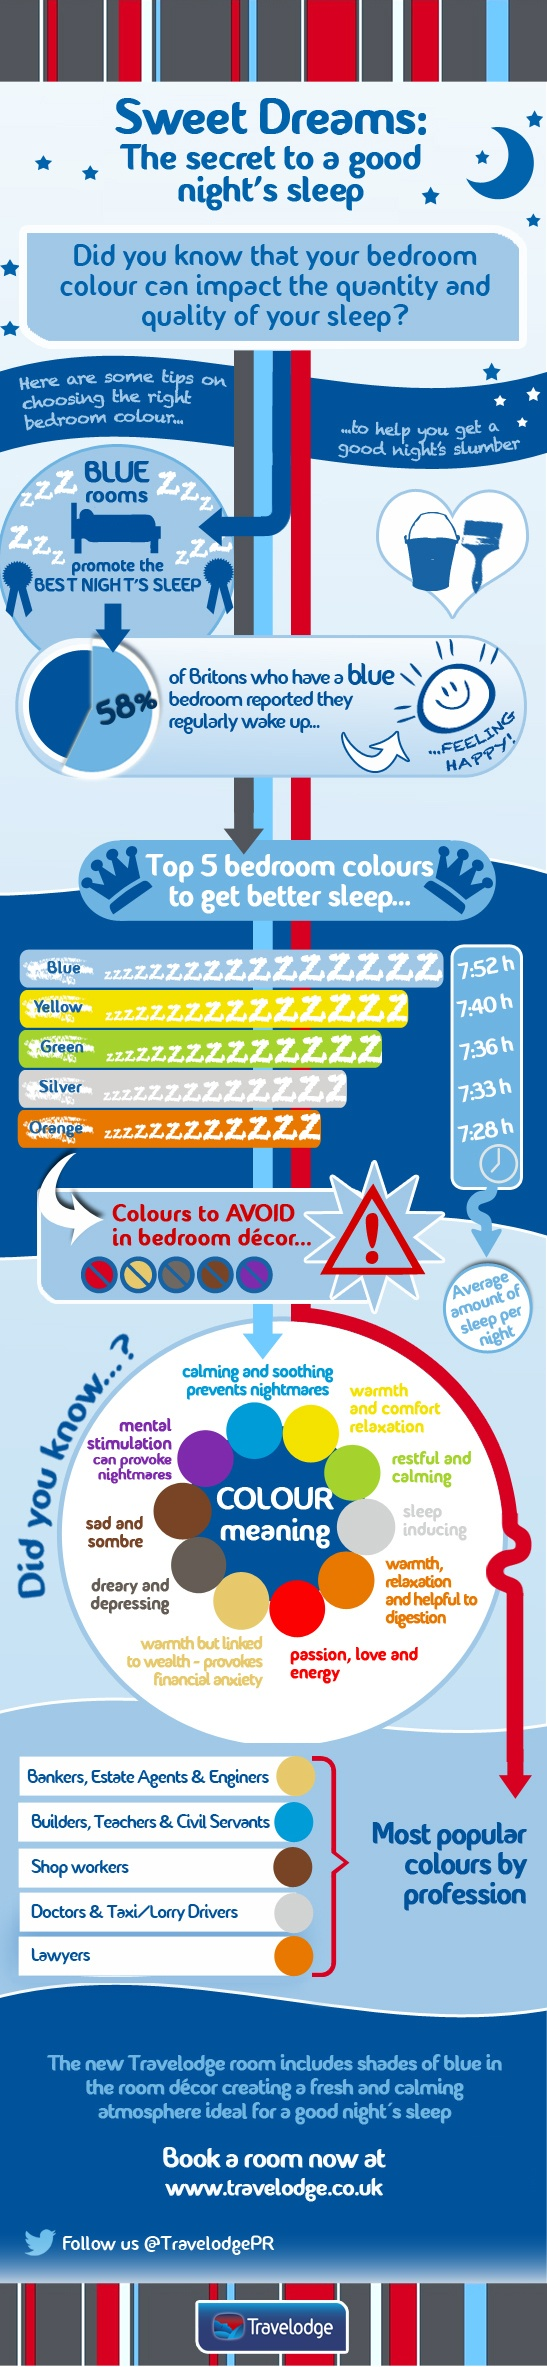 Travelodge-Bedroom Colour Infographic